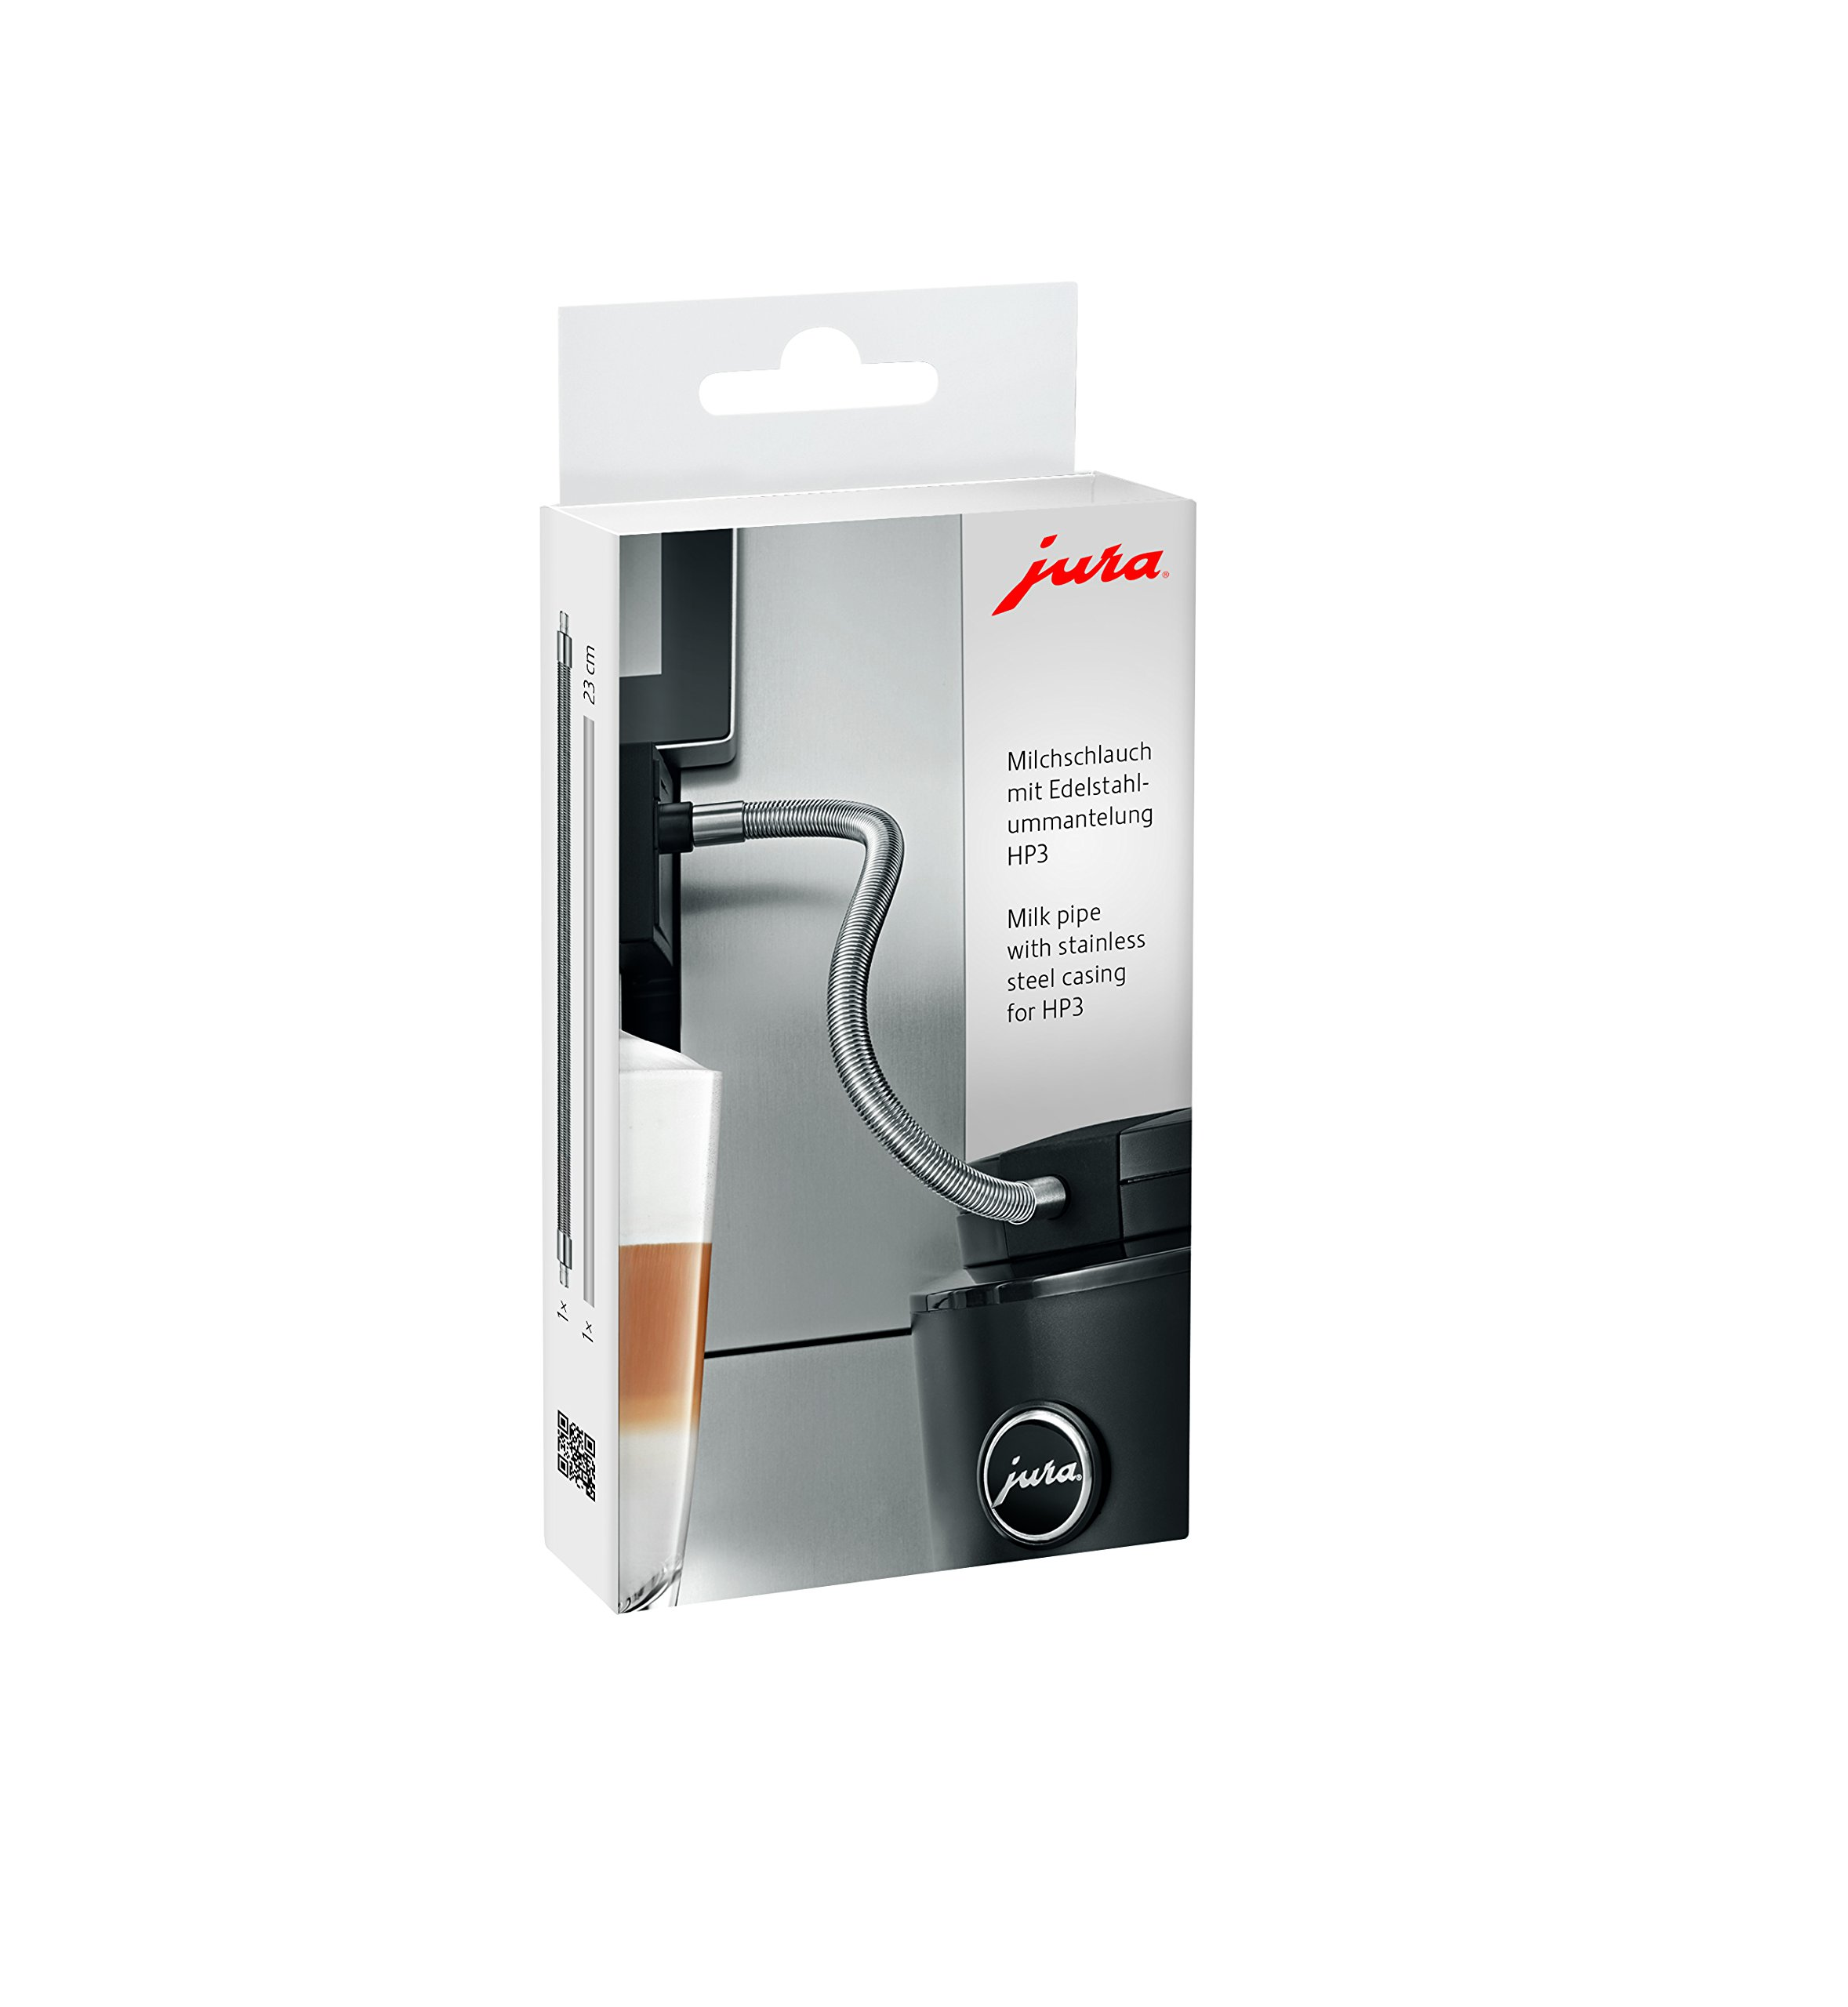 Jura Milk pipe with stainless steel casing HP3 by Jura